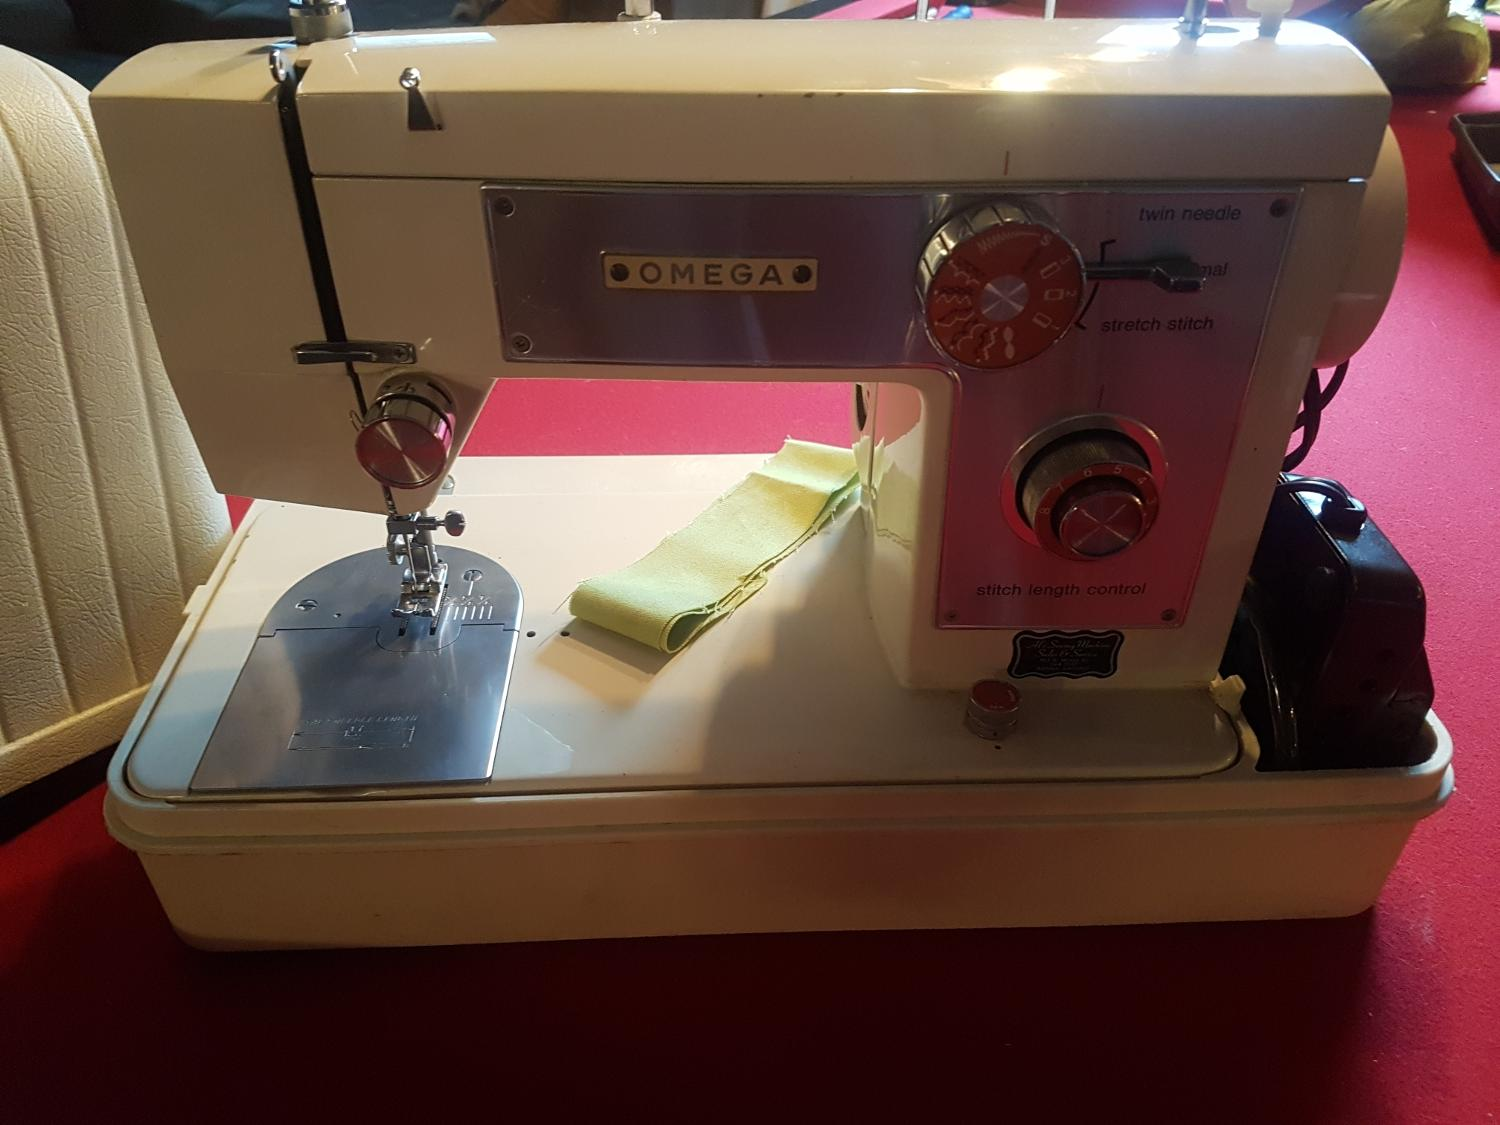 Knitting Machine For Sale Near Me : Best omega sewing machine for sale in sarnia ontario